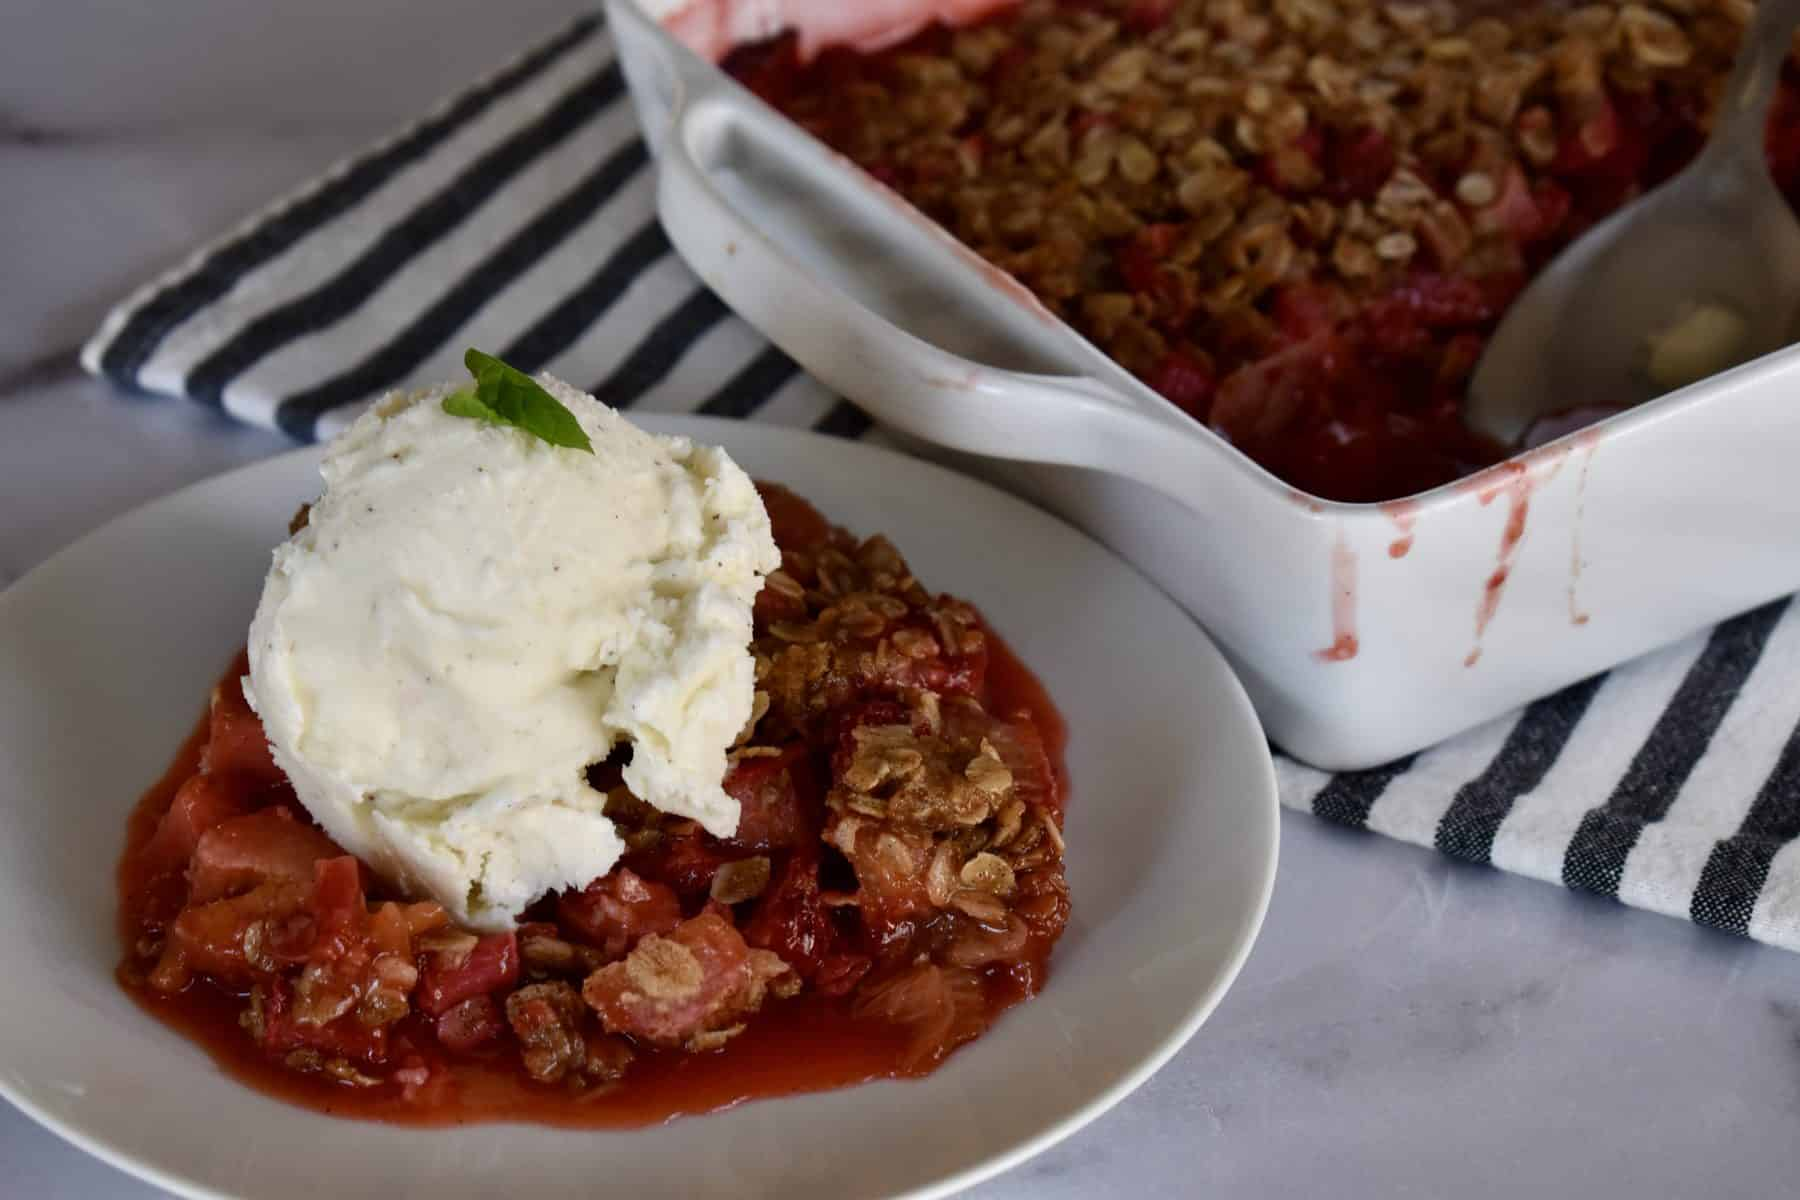 Strawberry Rhubarb Crisp on a white plate with a white serving dish behind it.